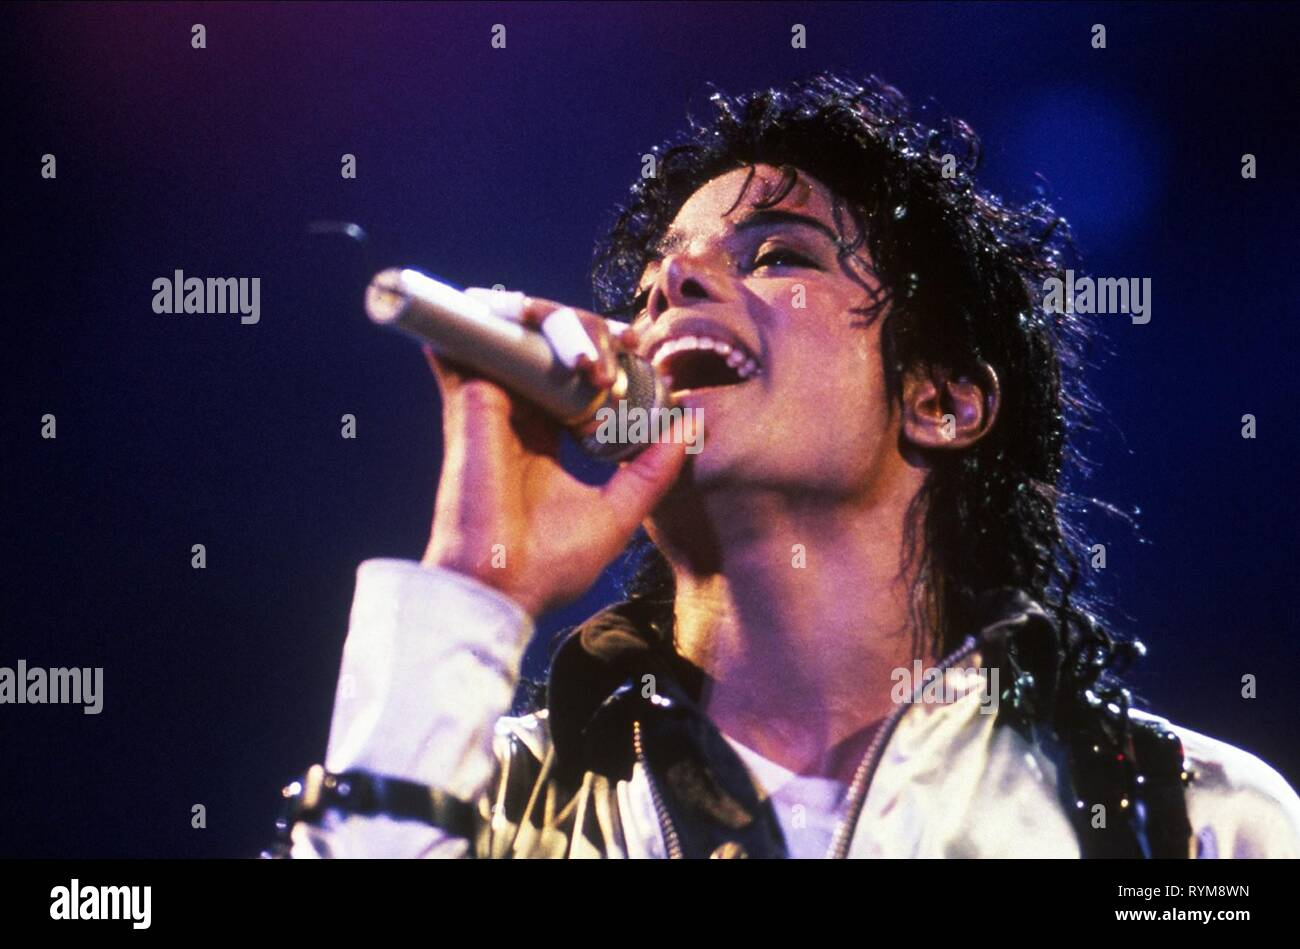 MICHAEL JACKSON, MICHAEL JACKSON: THE INSIDE STORY - WHAT KILLED THE KING OF POP?, 2010 - Stock Image